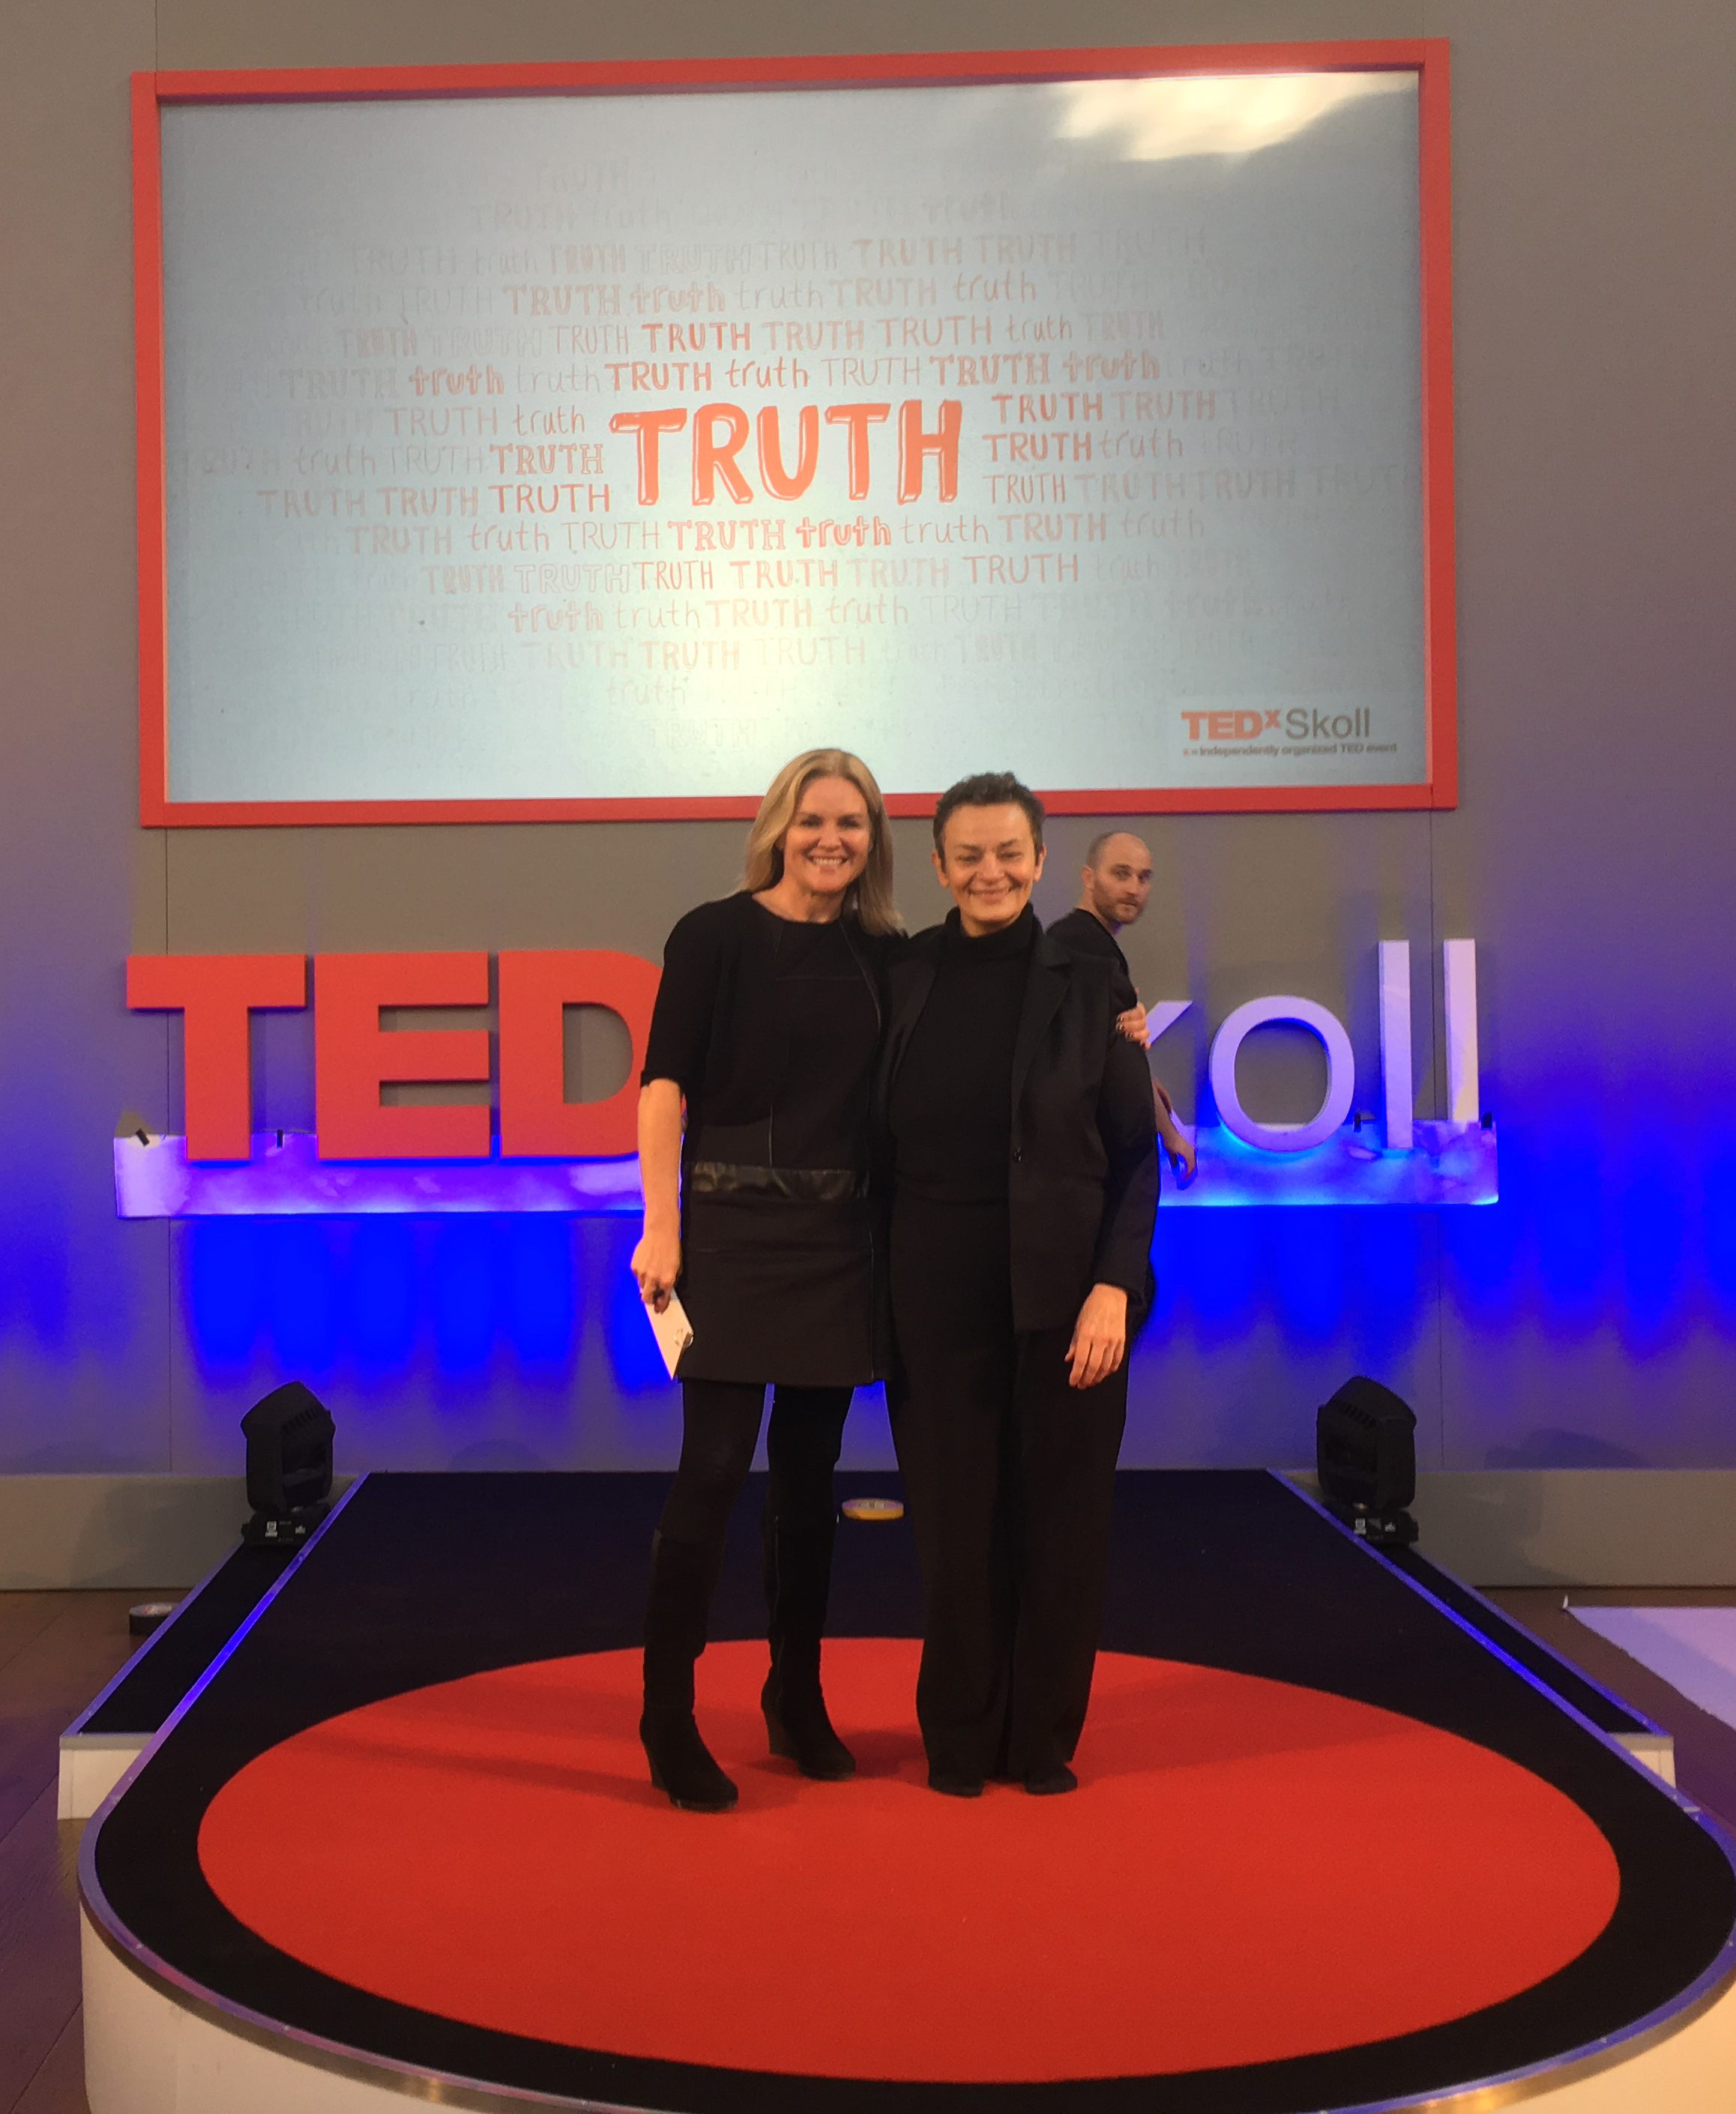 (l-r) TEDxSkoll organizer Antonella Broglia and Renee Kaplan at the Sheldonian Theatre.